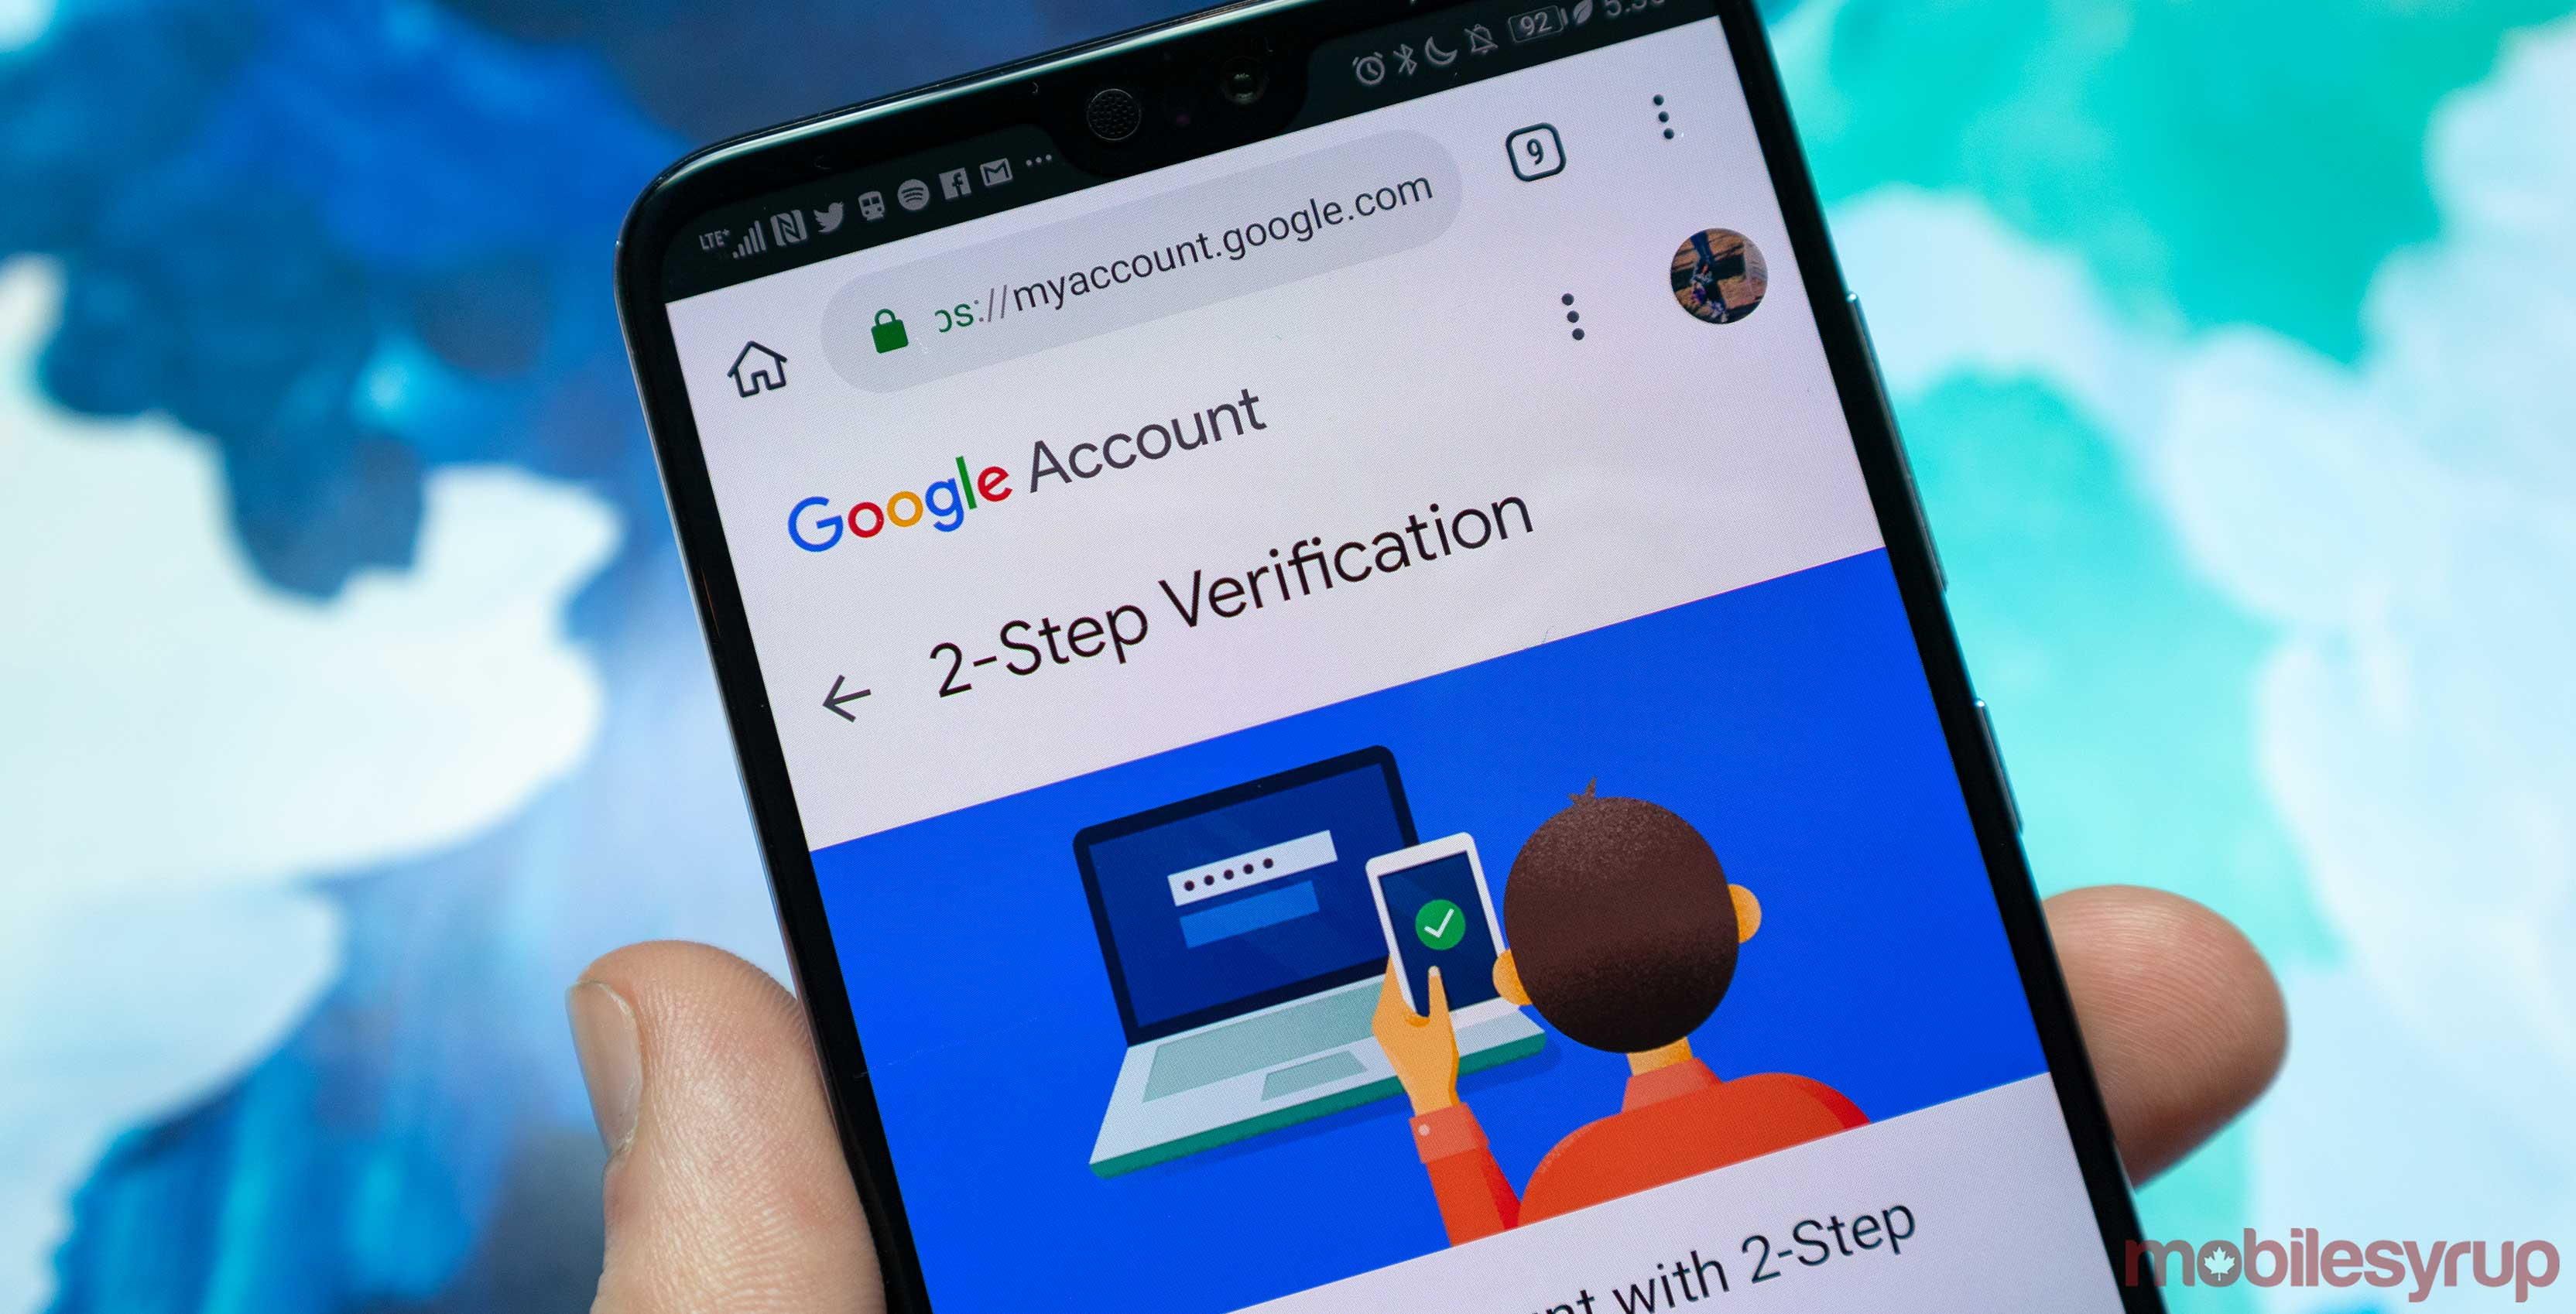 Google will let you use your Android phone to verify logins